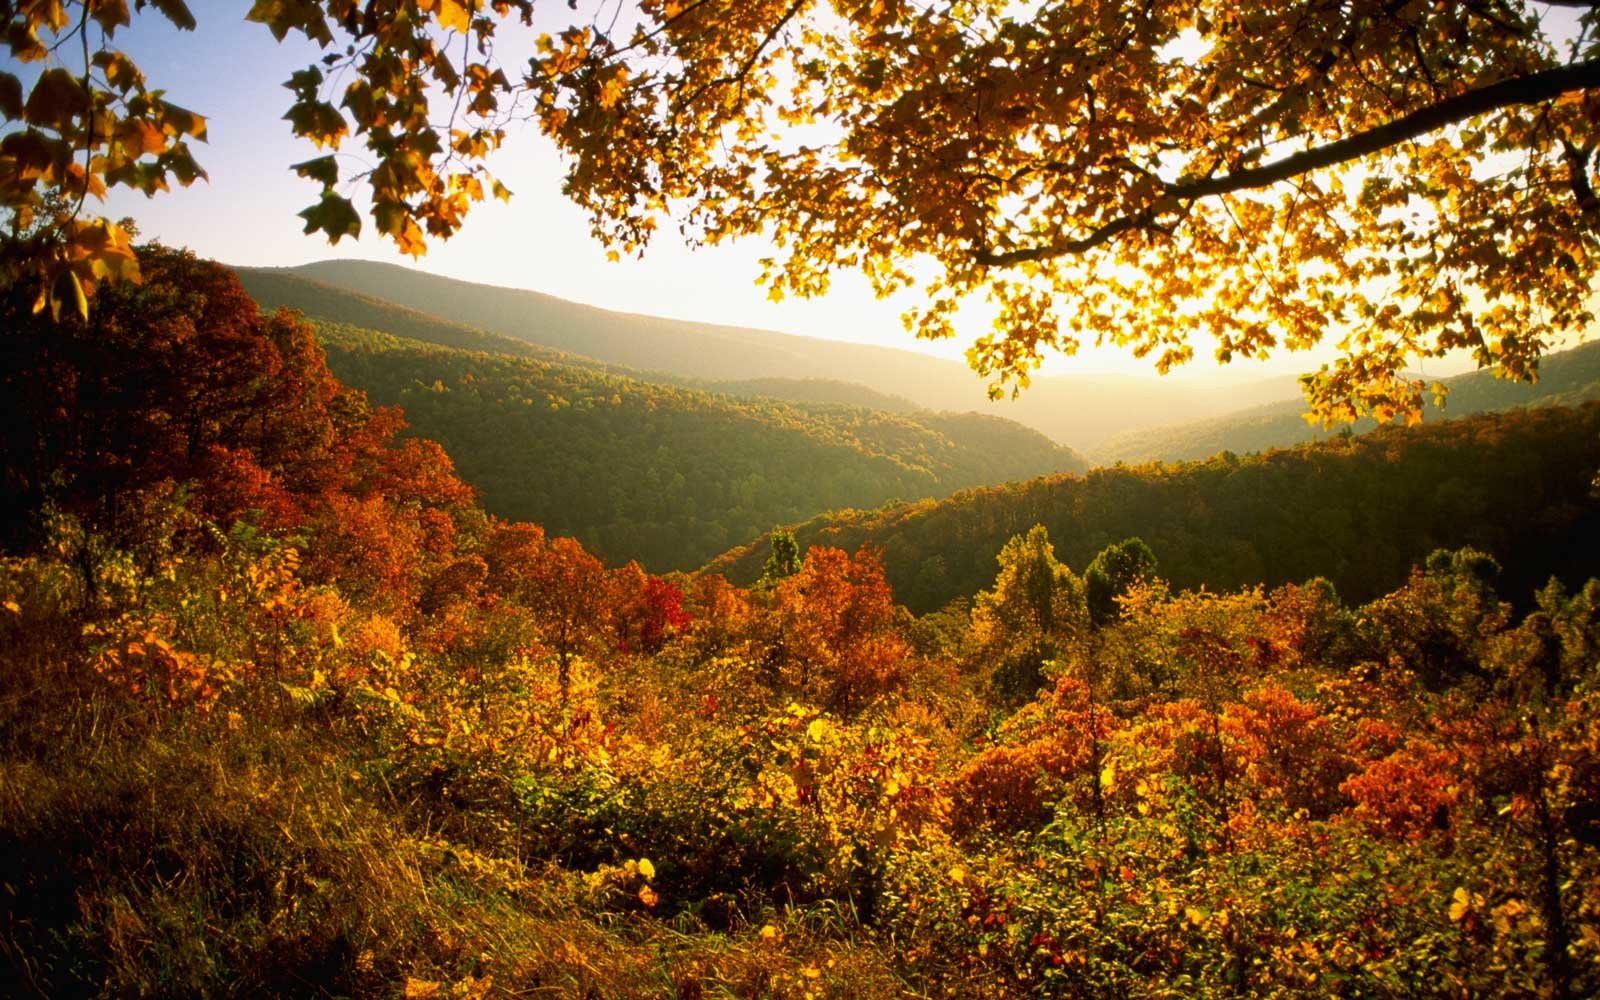 Autumn in Shenandoah National Park, Virginia, USA